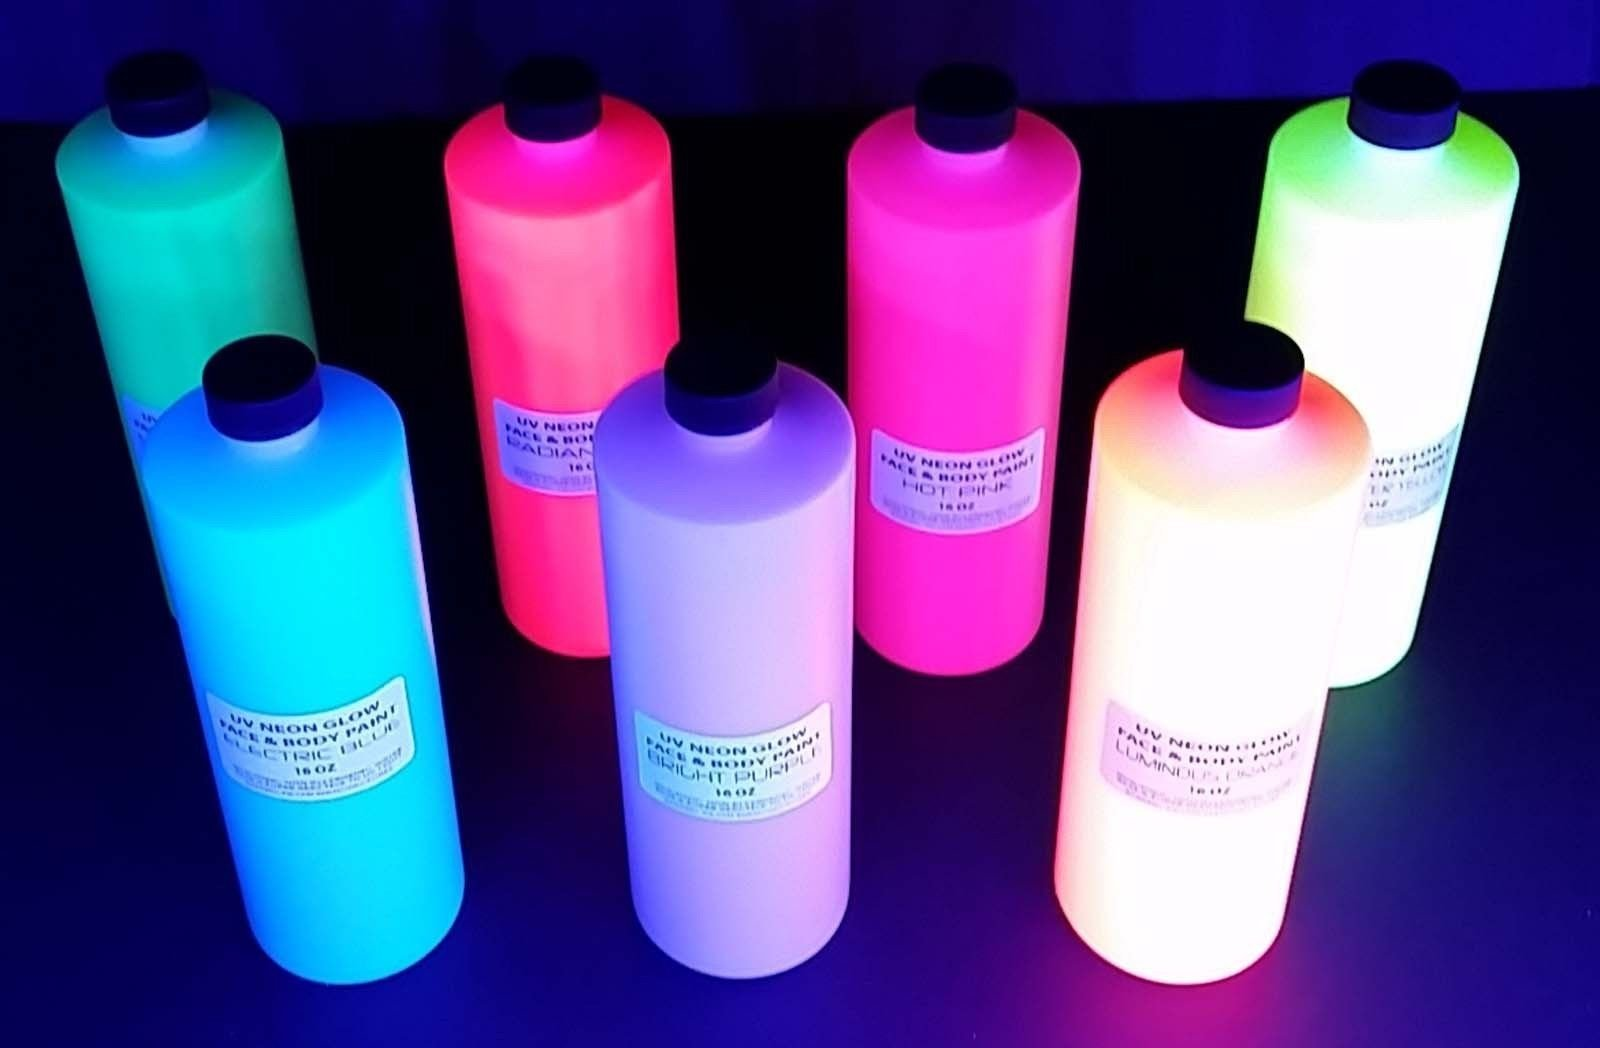 UV BLACK LIGHT GLOW PAINT NEON FLUORESCENT GLOW AIRBRUSH PARTY RAVE NEON RAVE SET OF 7 TUBES UV PAINT 16 OZ